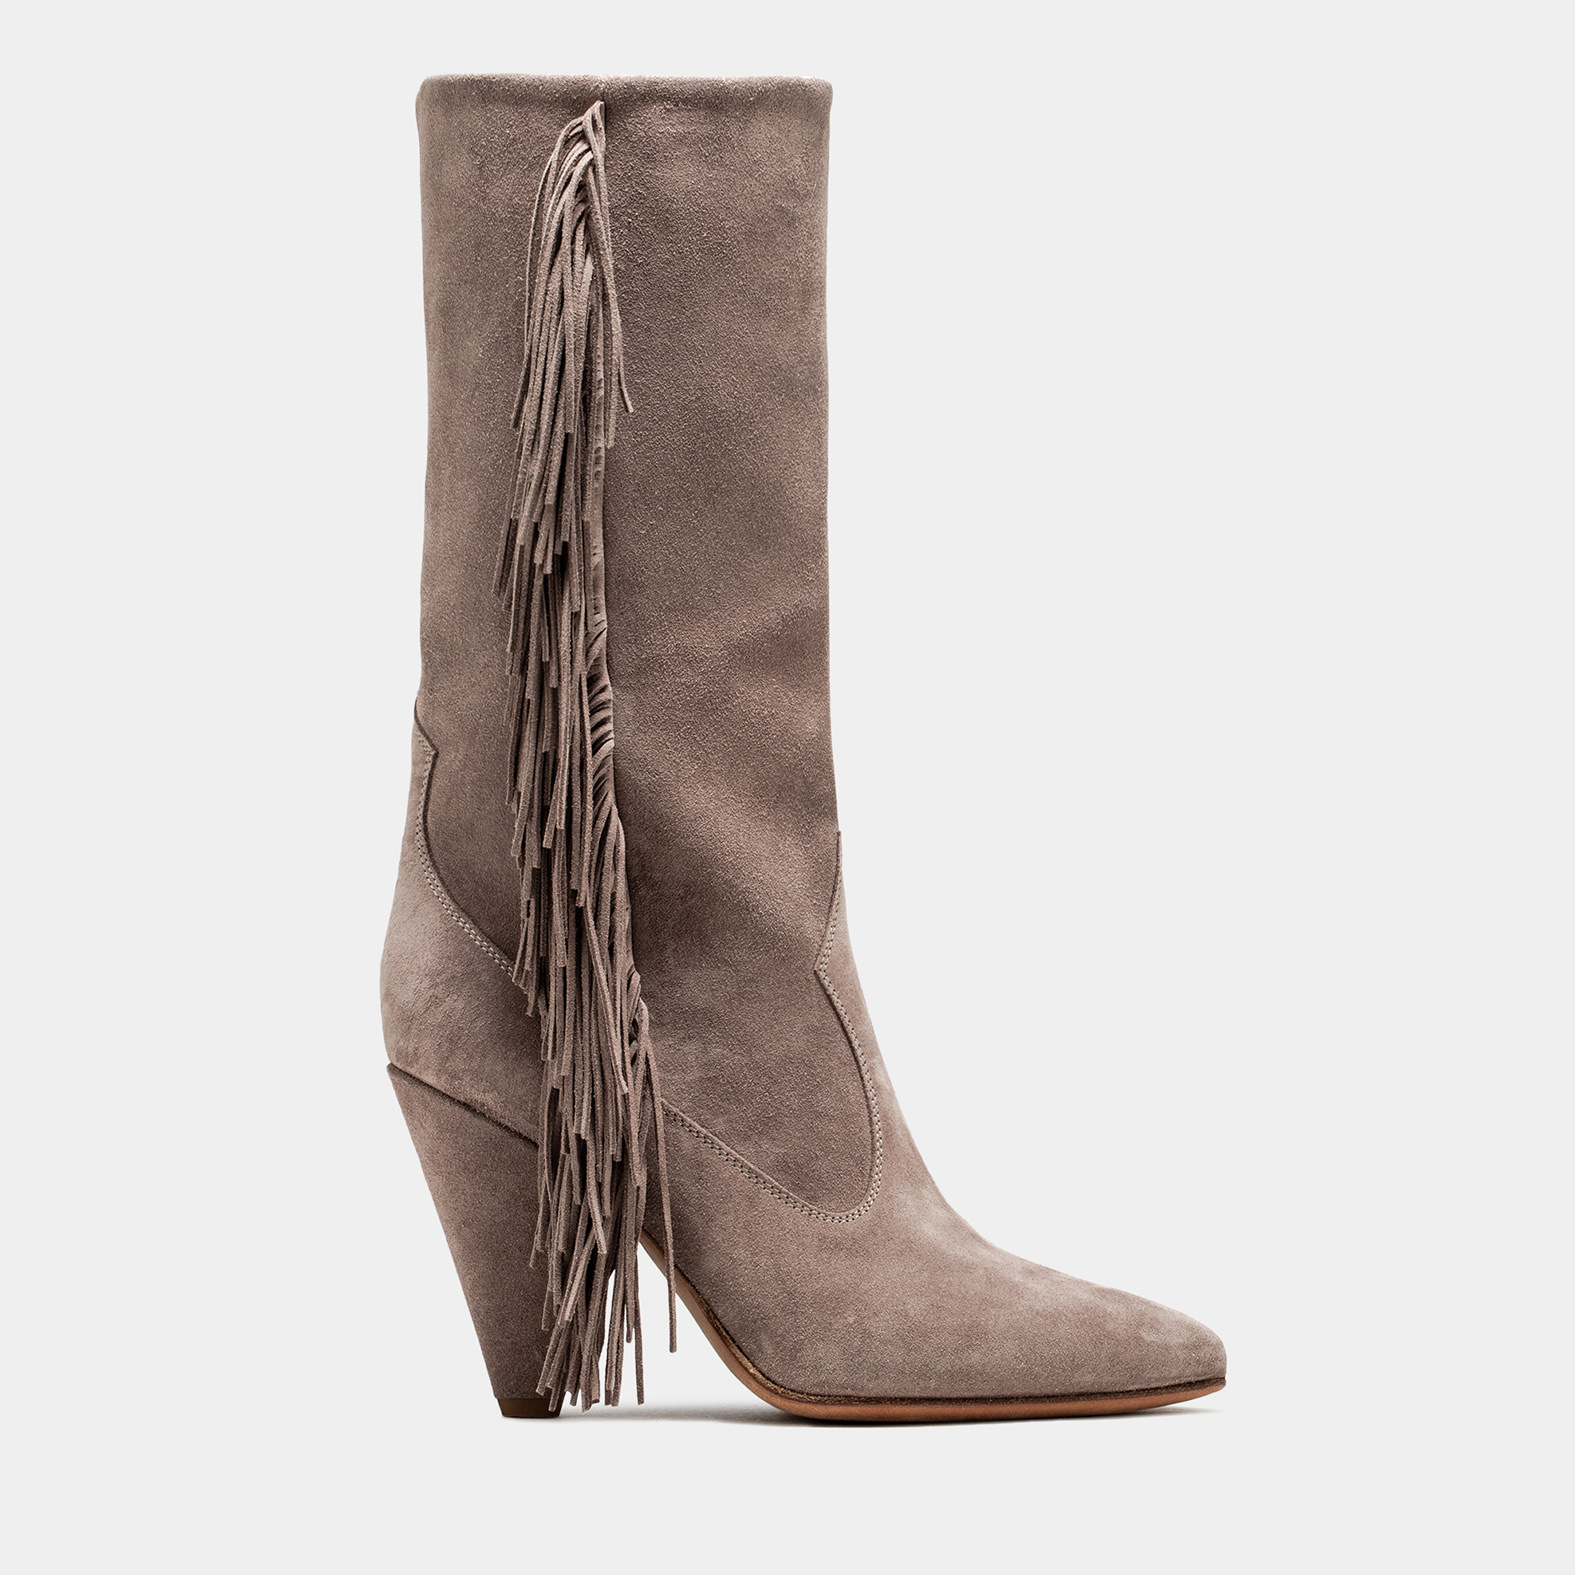 BUTTERO: SPHINX GREY SUEDE ROSE MID TOP BOOTS WITH FRINGES